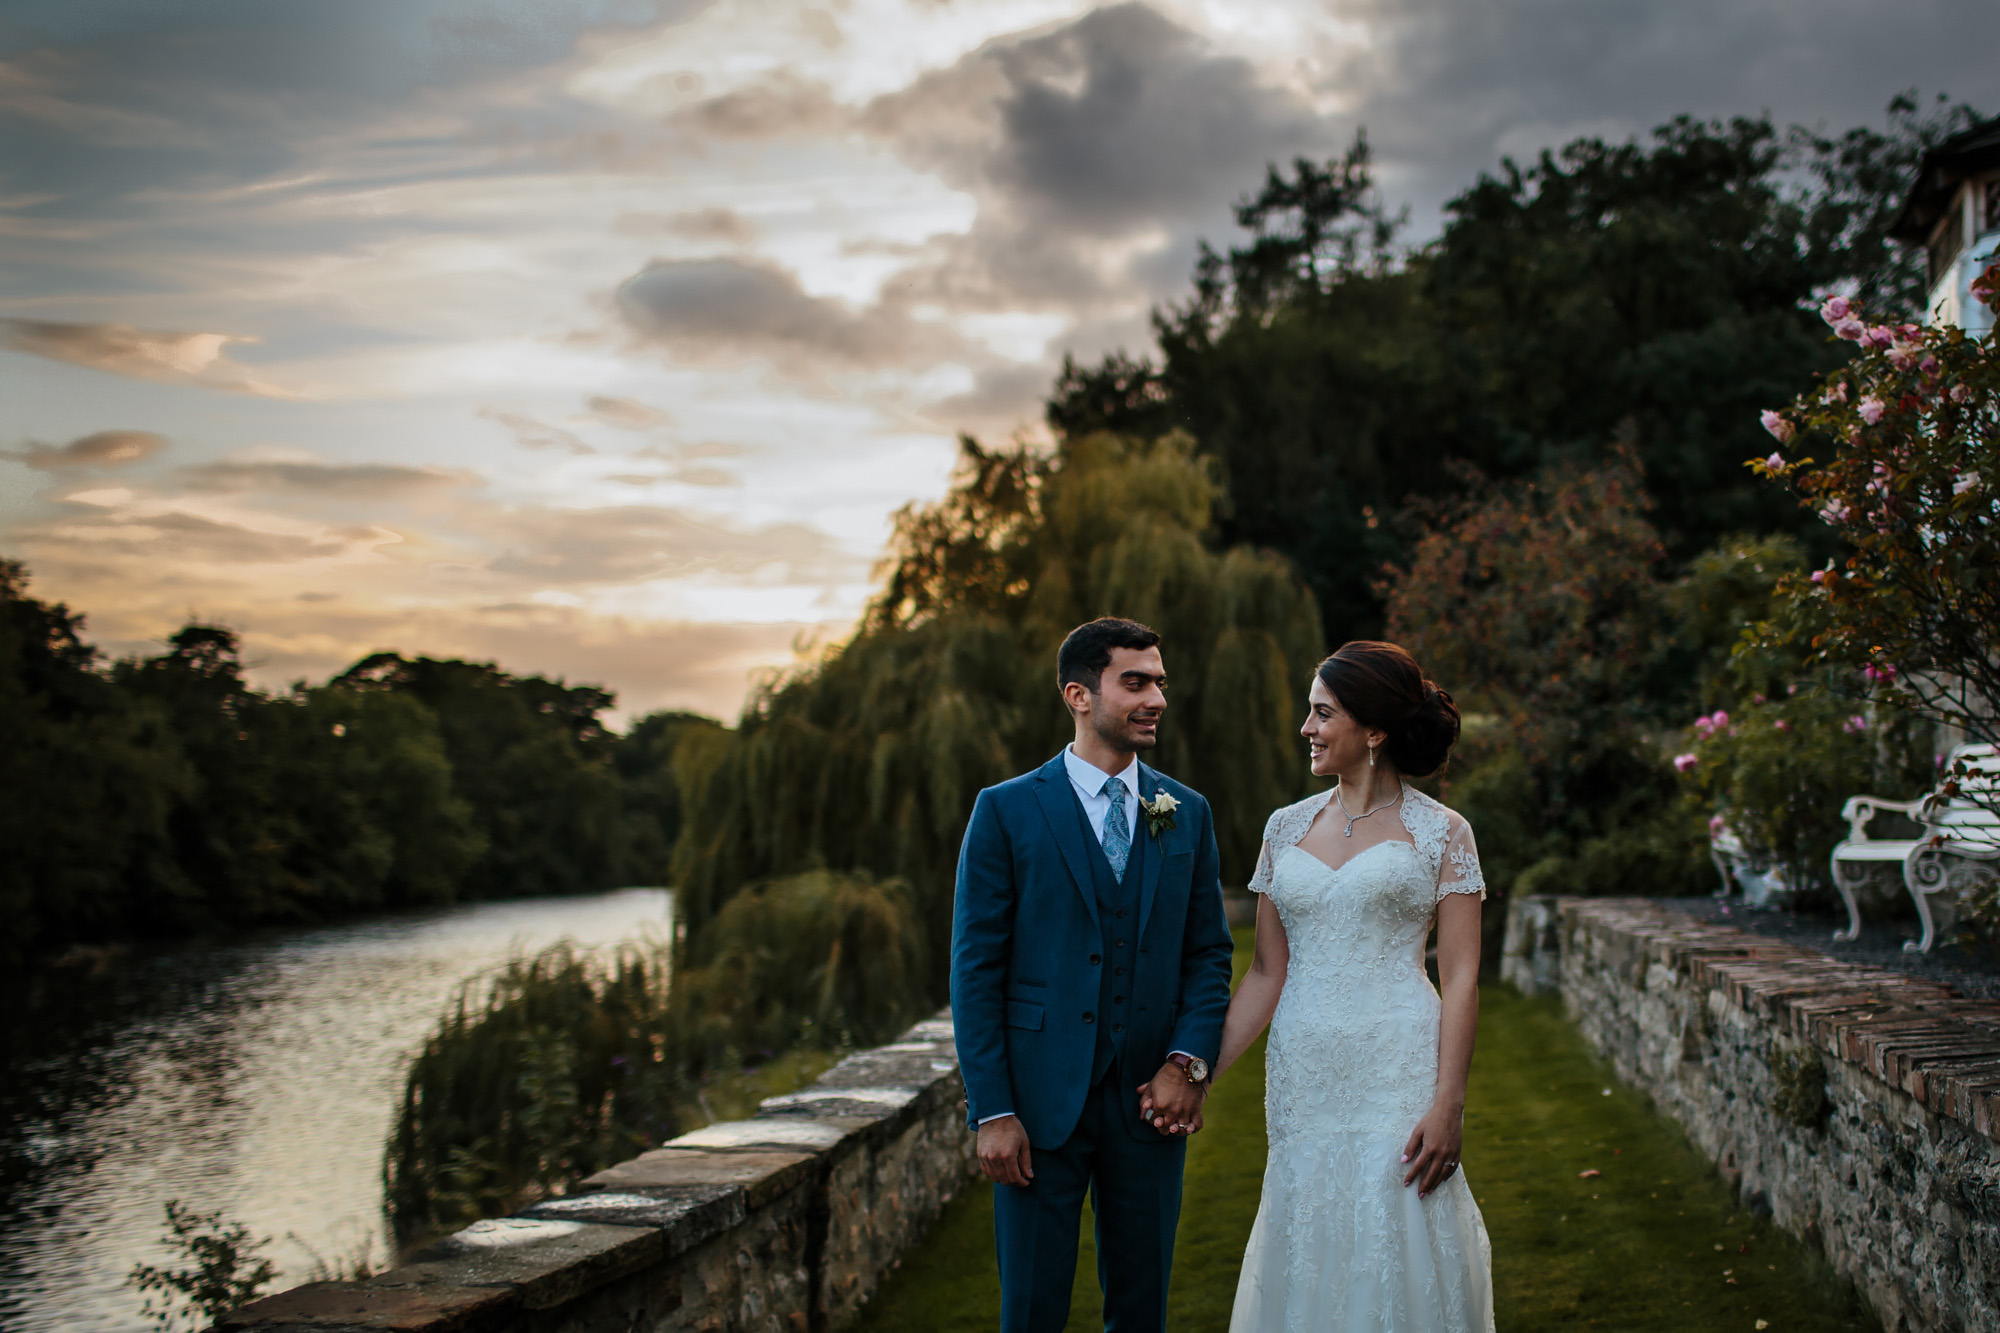 Portrait of the bride and groom at sunset by a river in Yorkshire